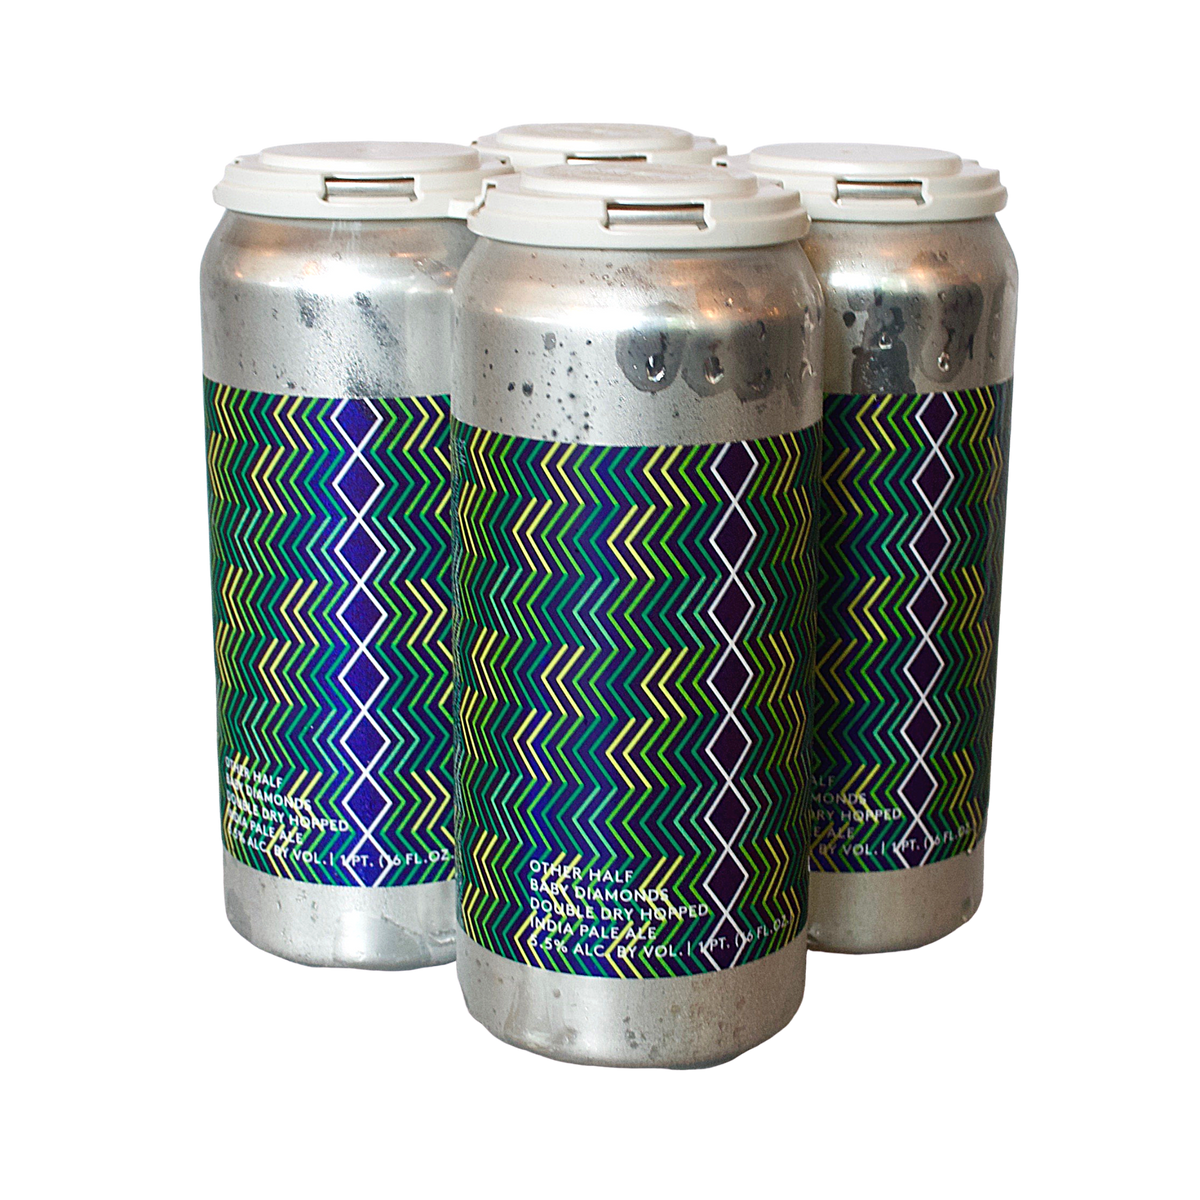 Other Half DDH Baby Diamonds 4-Pack <br> DDH Session IPA <br> (Limit 2 Per Order)